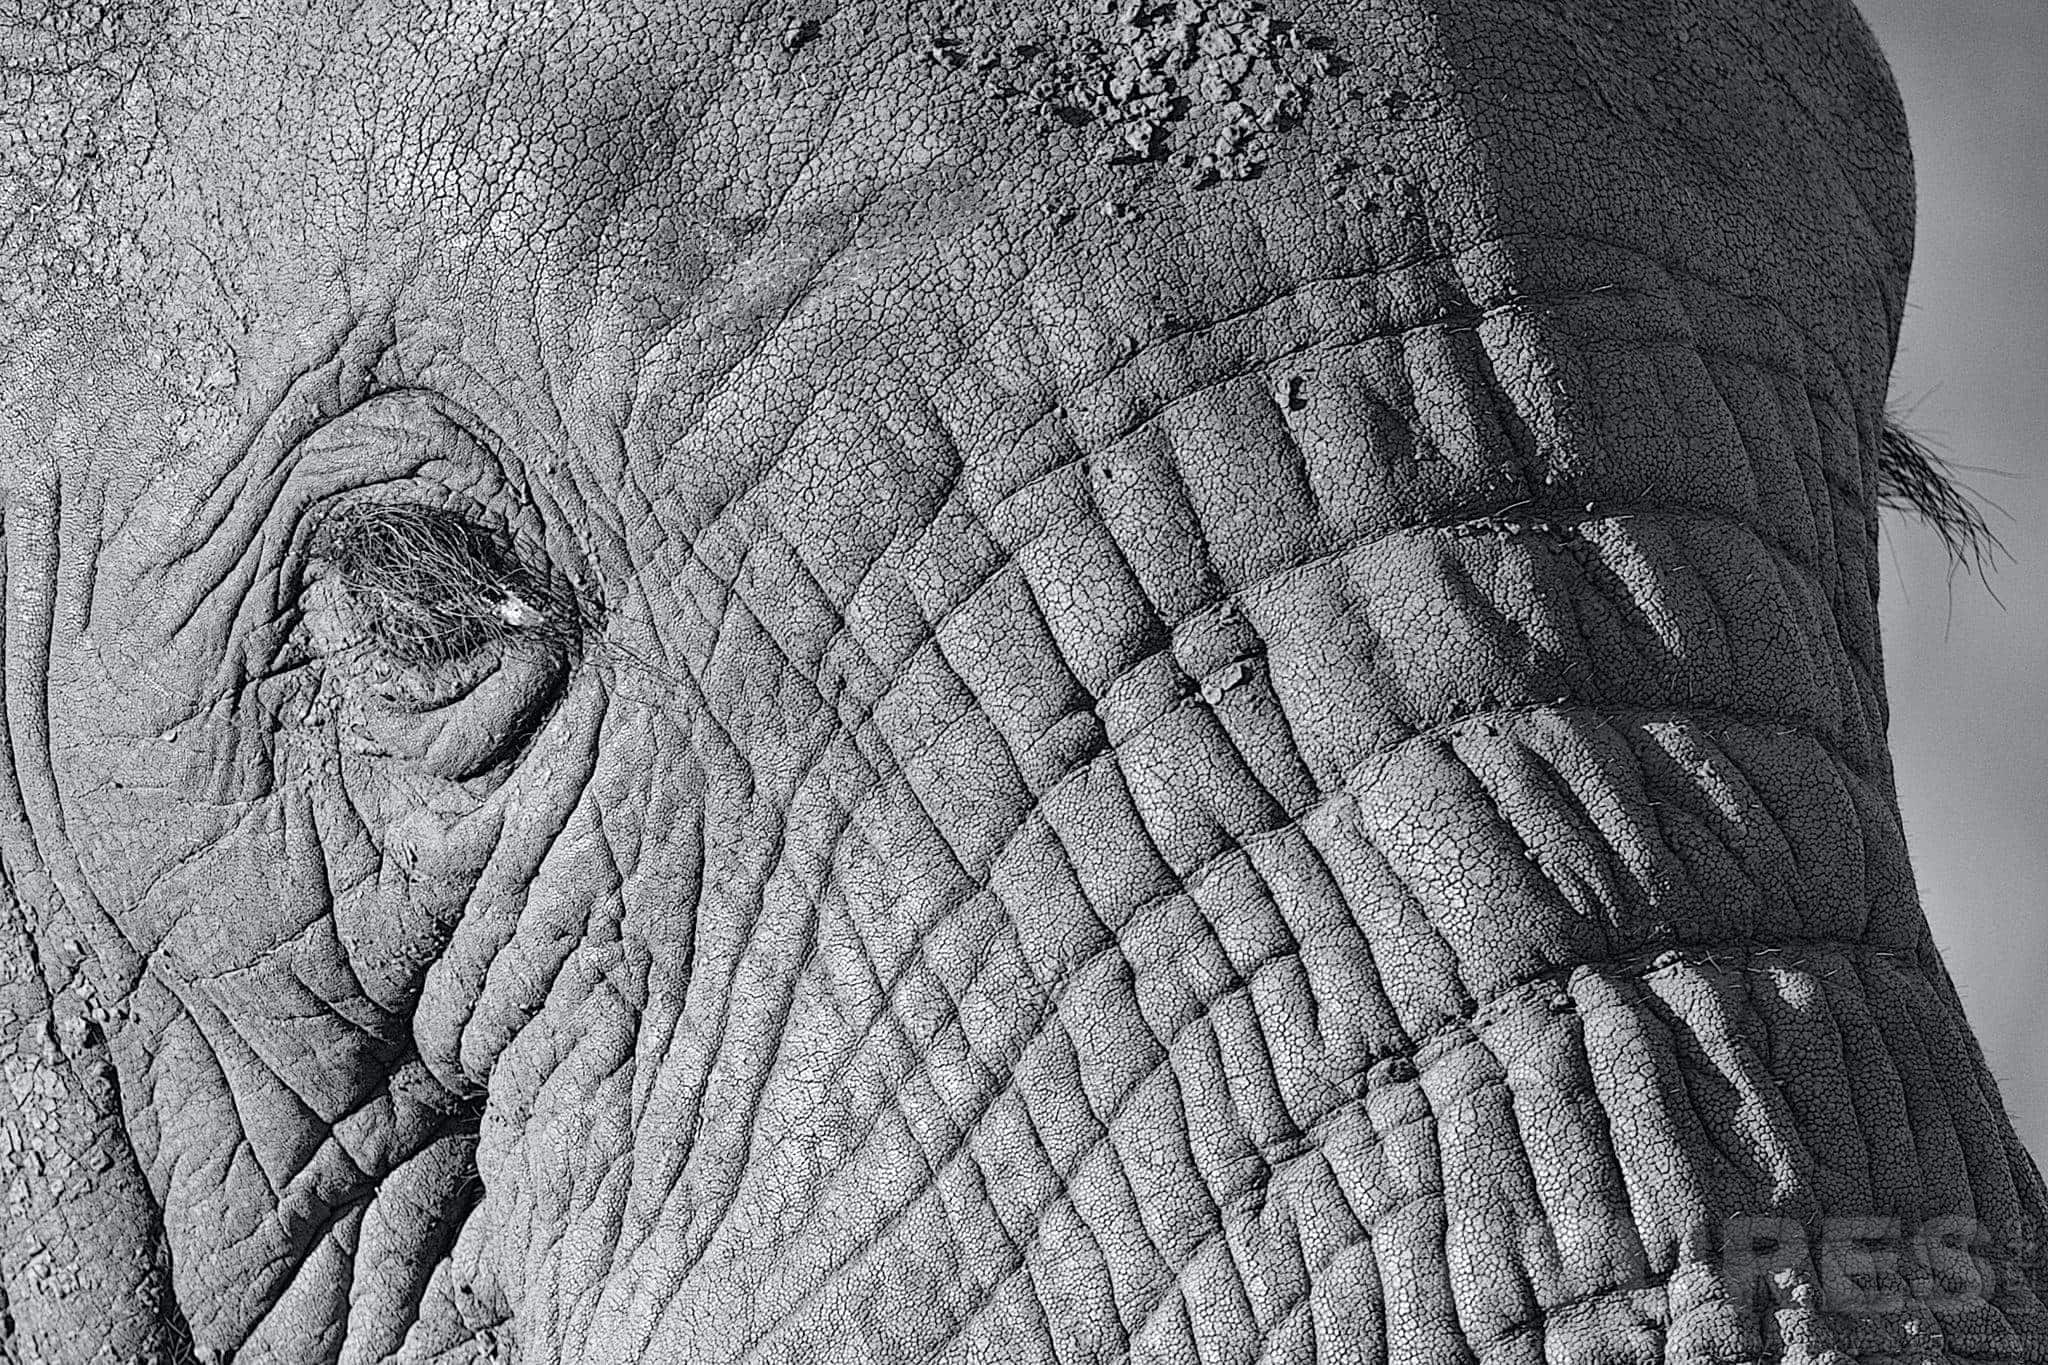 Elephant Eyelashes In Monochrome   Captured During The Natureslens South African Wildlife Zimanga Photography Holiday